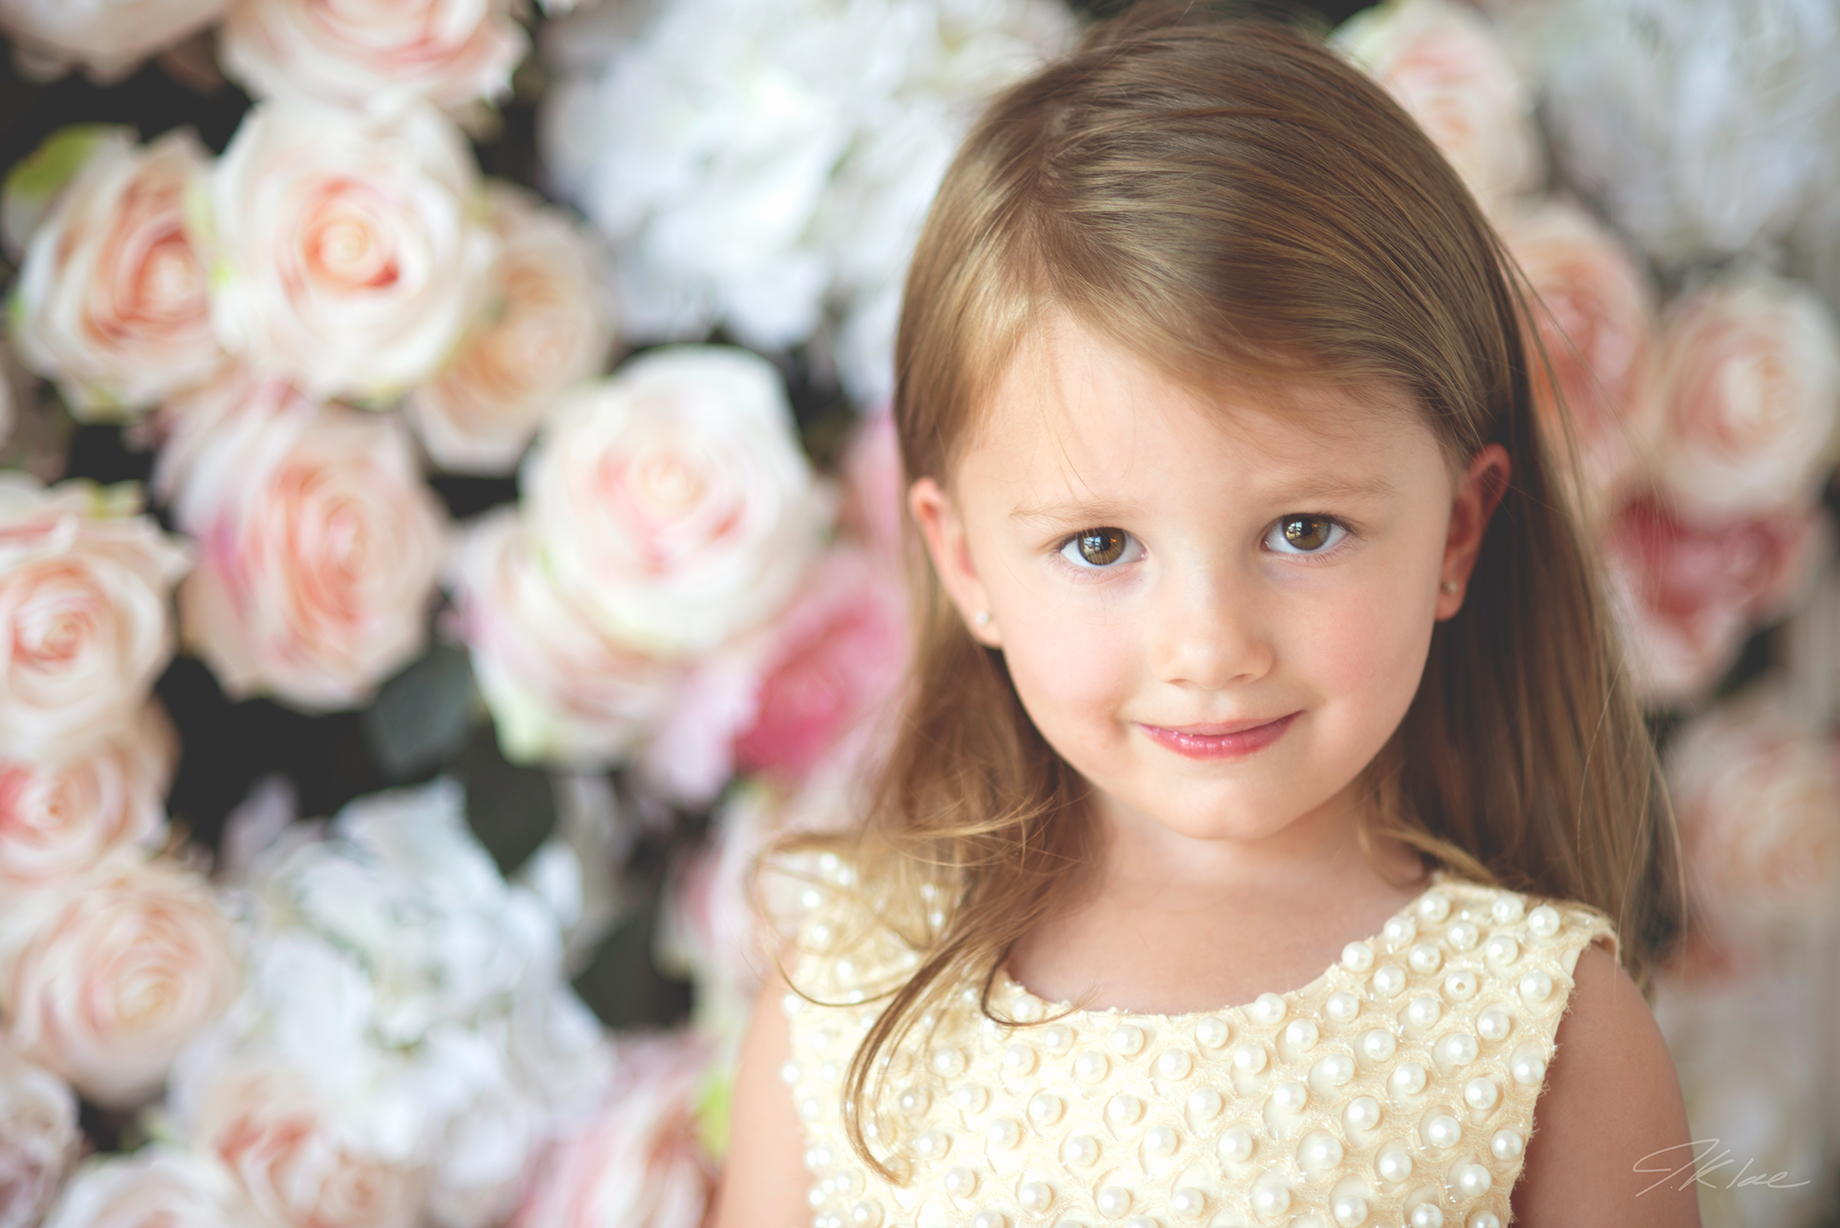 Princess Images of toddler with flower wall